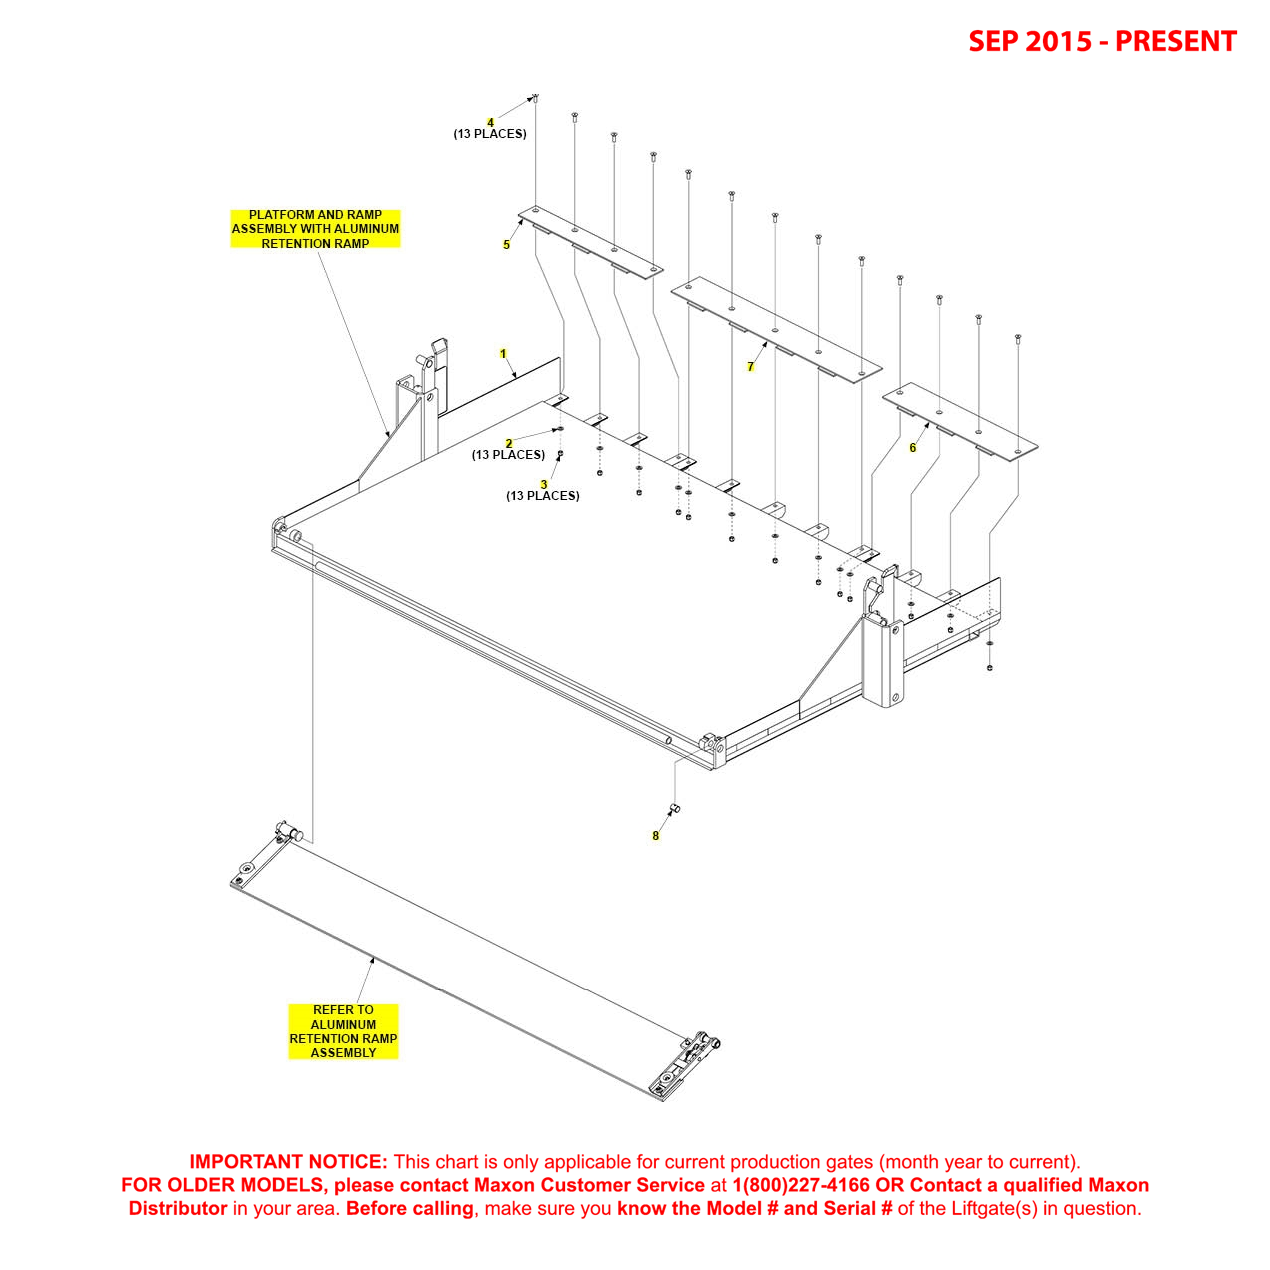 RA (Sep 2015 - Present) 82 Inch Platform And Aluminum Retention Ramp Ramp Assembly